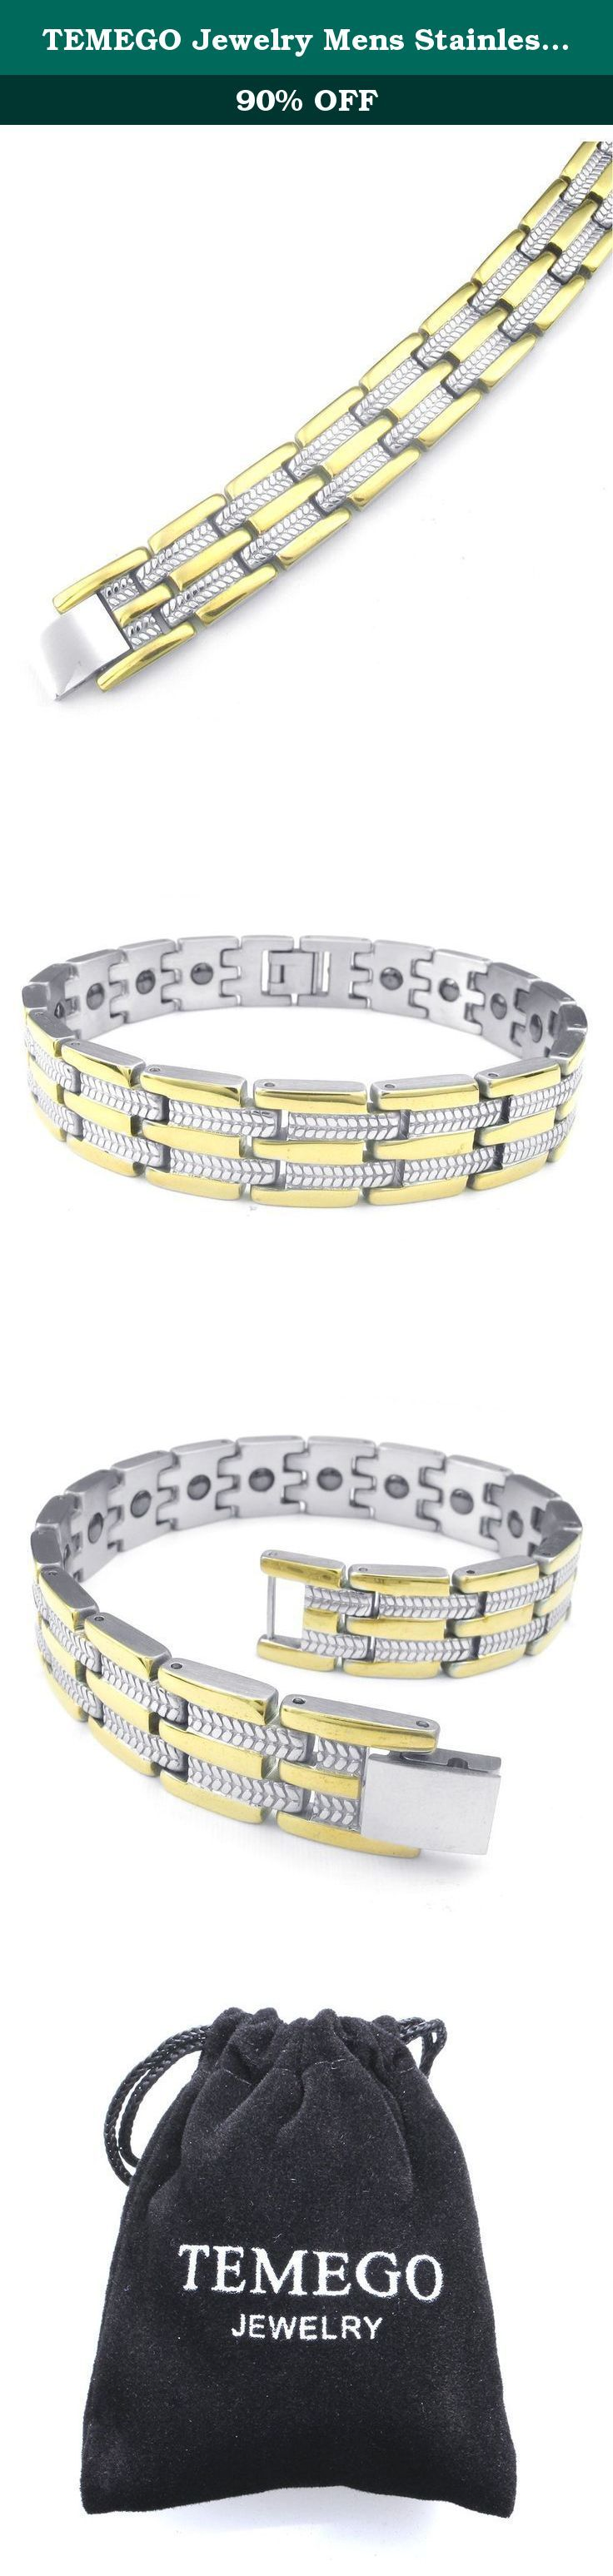 TEMEGO Jewelry Mens Stainless Steel Bracelet, Classic Wide Biker Links Cuff Bangle, Golden Silver. Stainless Steel Jeweley has gained increasing popularity in men's jewelry. It does not tarnish and oxidized, which can last longer than other types of jewelry. Stainless steel jewelry has an amazing property of anti-allergice since they are often made without nickel.